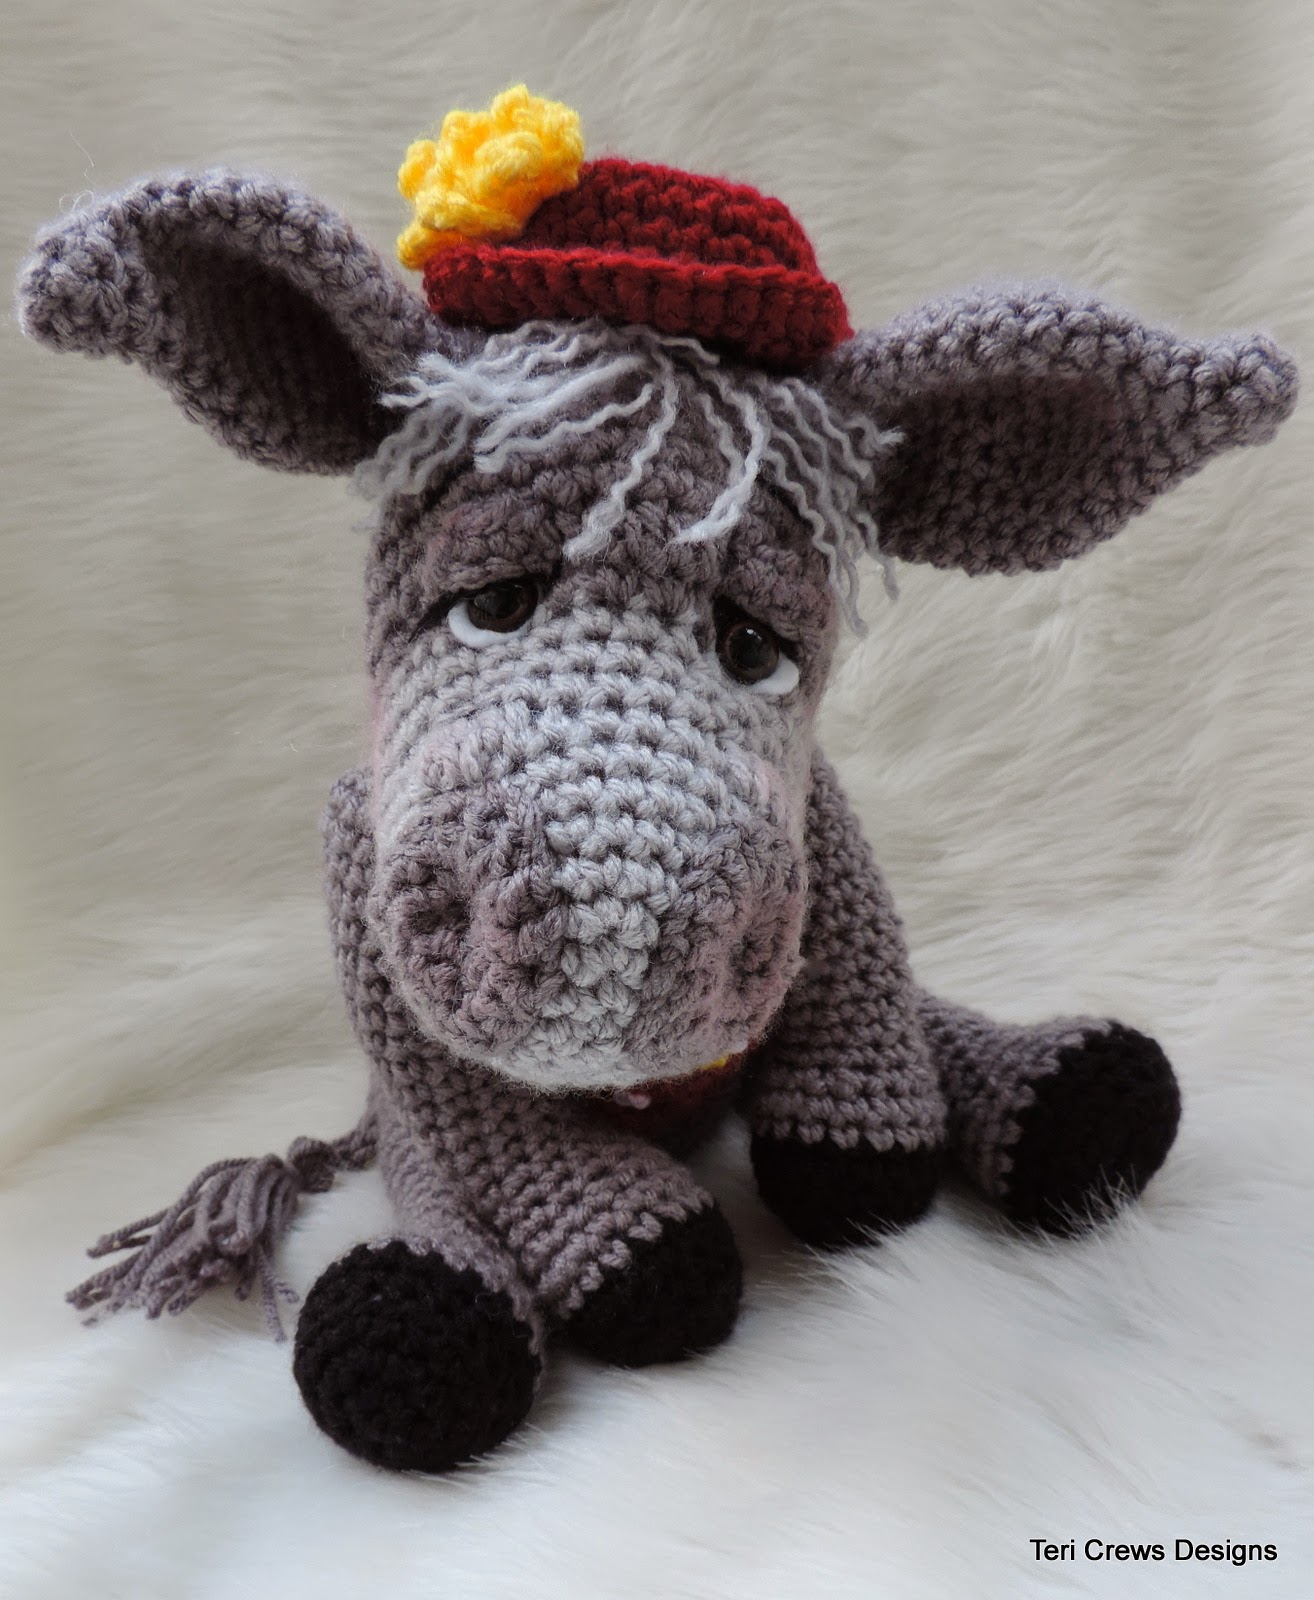 Teris Blog: New Donkey Crochet Pattern